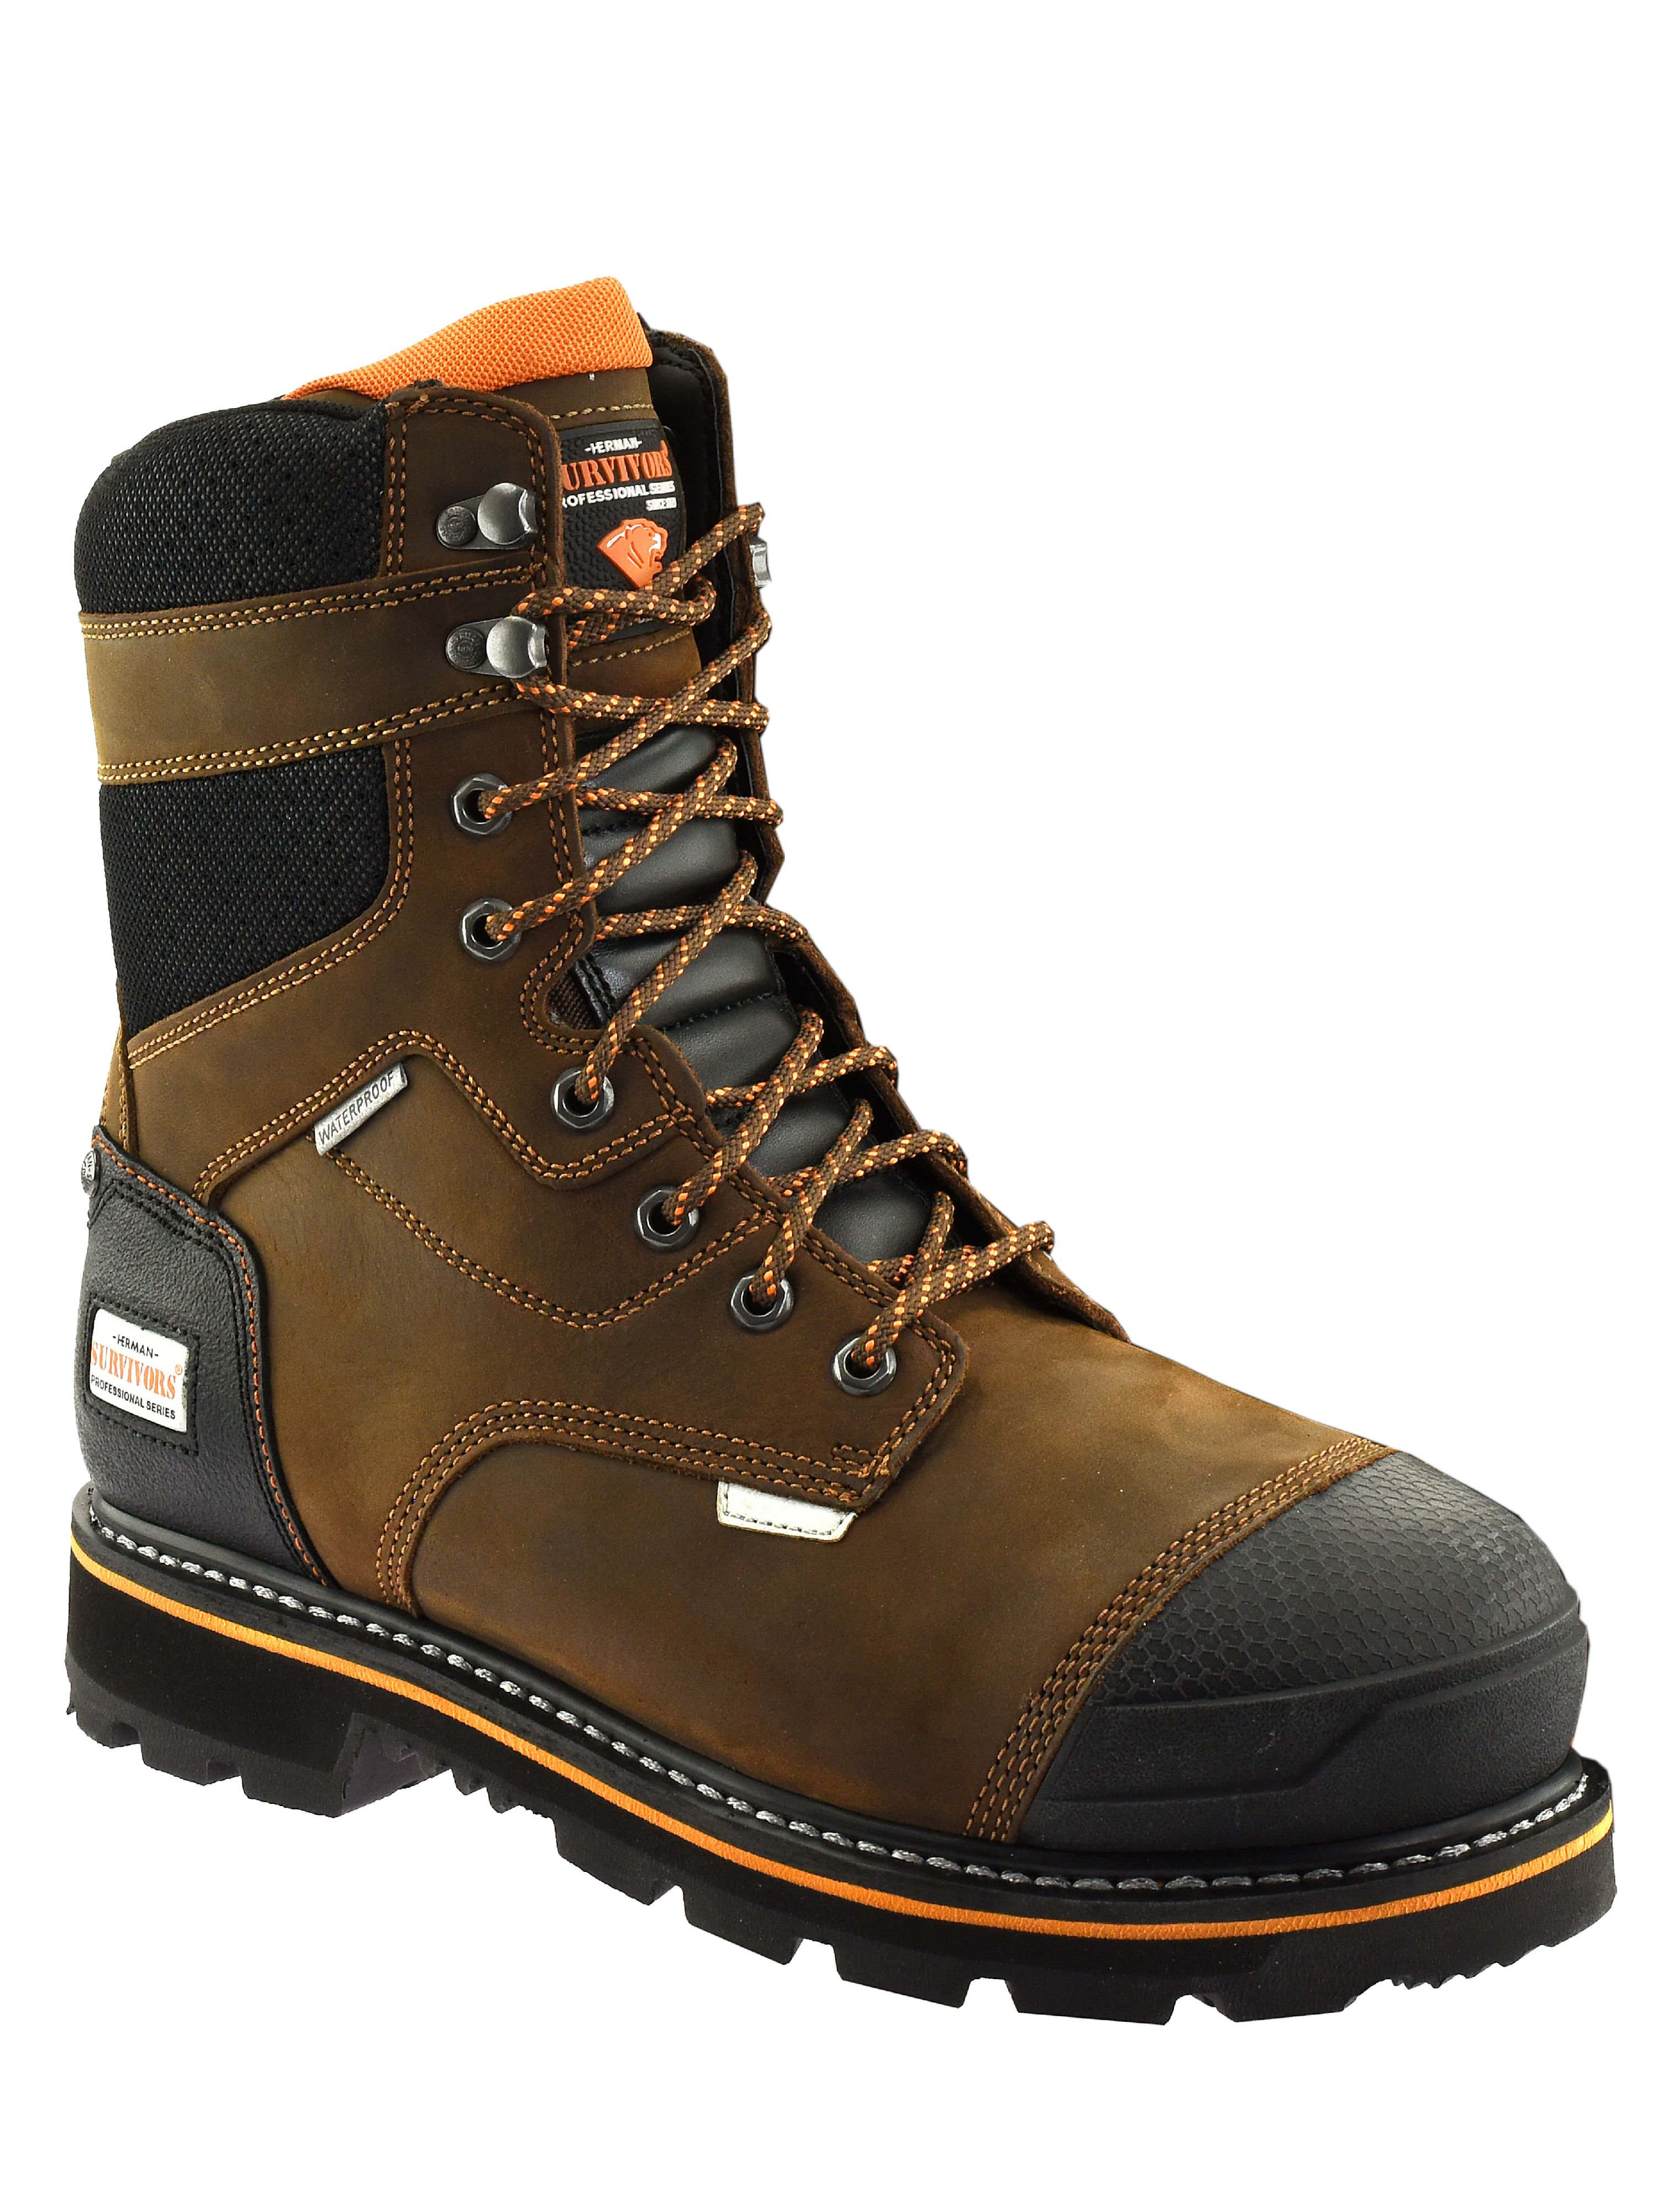 Herman Survivor Professional Series Men?s 8 inch Dozier Work Boot, ASTM Rated Safe, Slip Resistant, Brown and Black